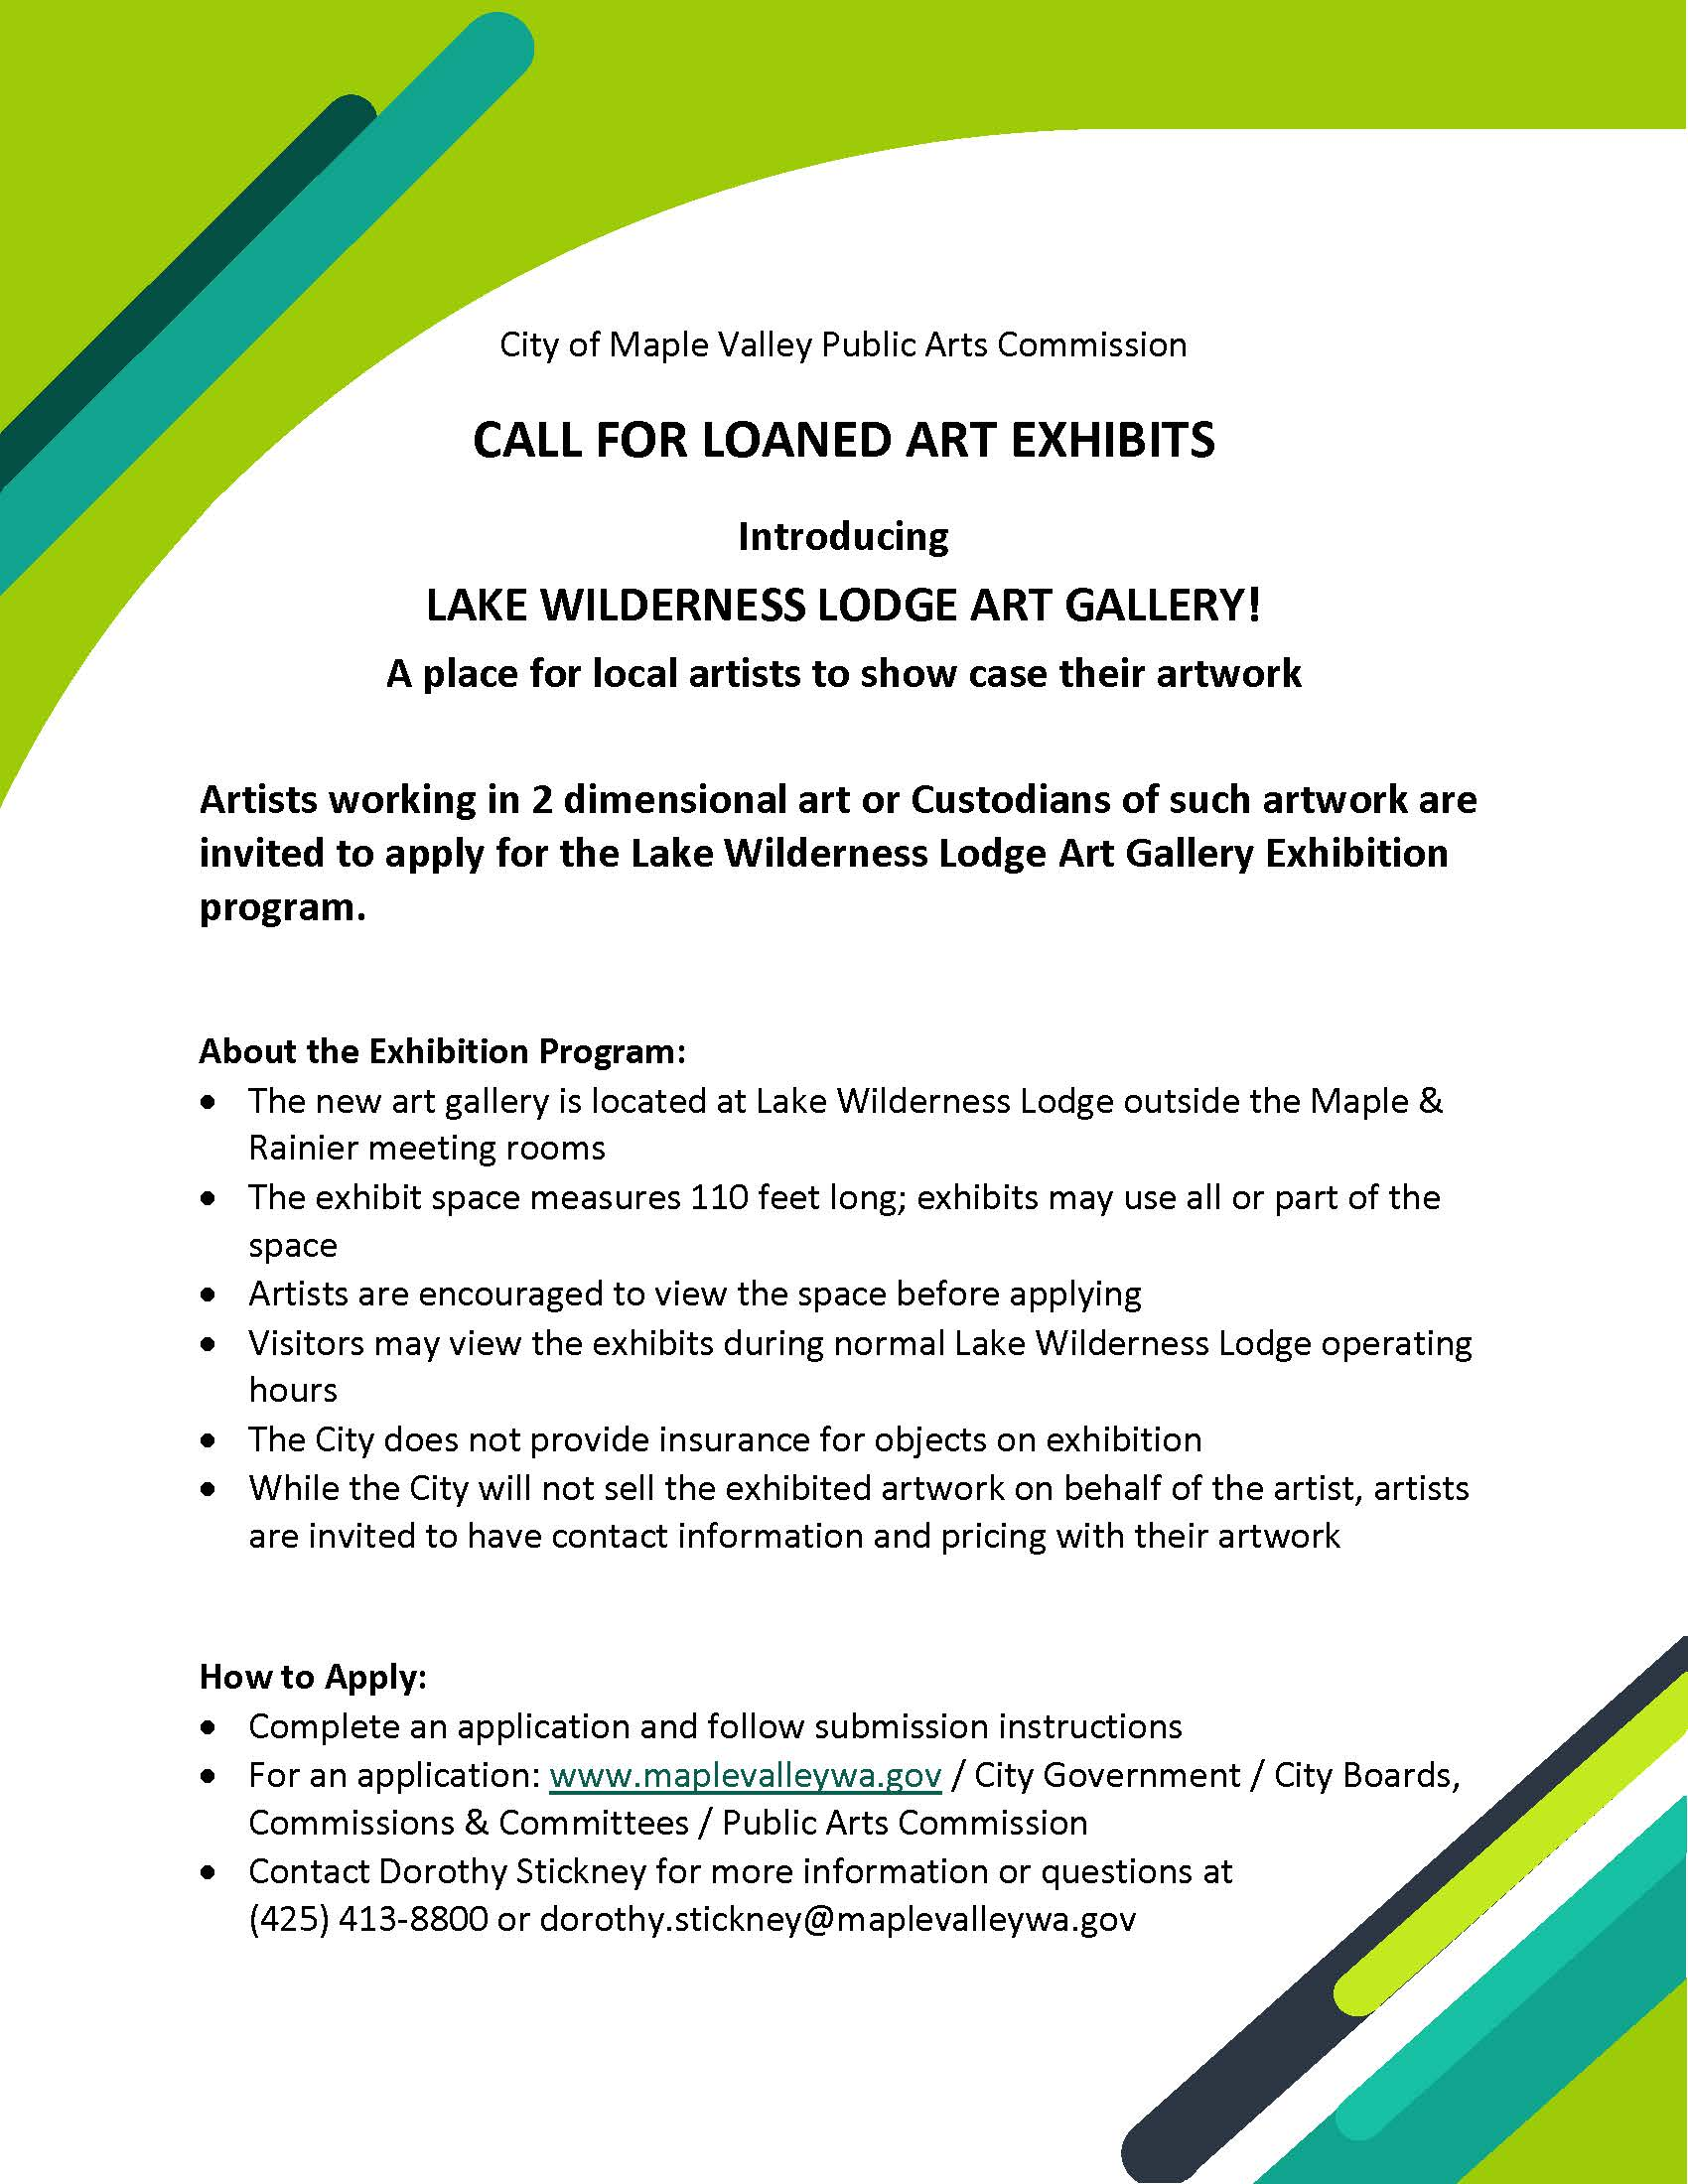 Call to Artist from City